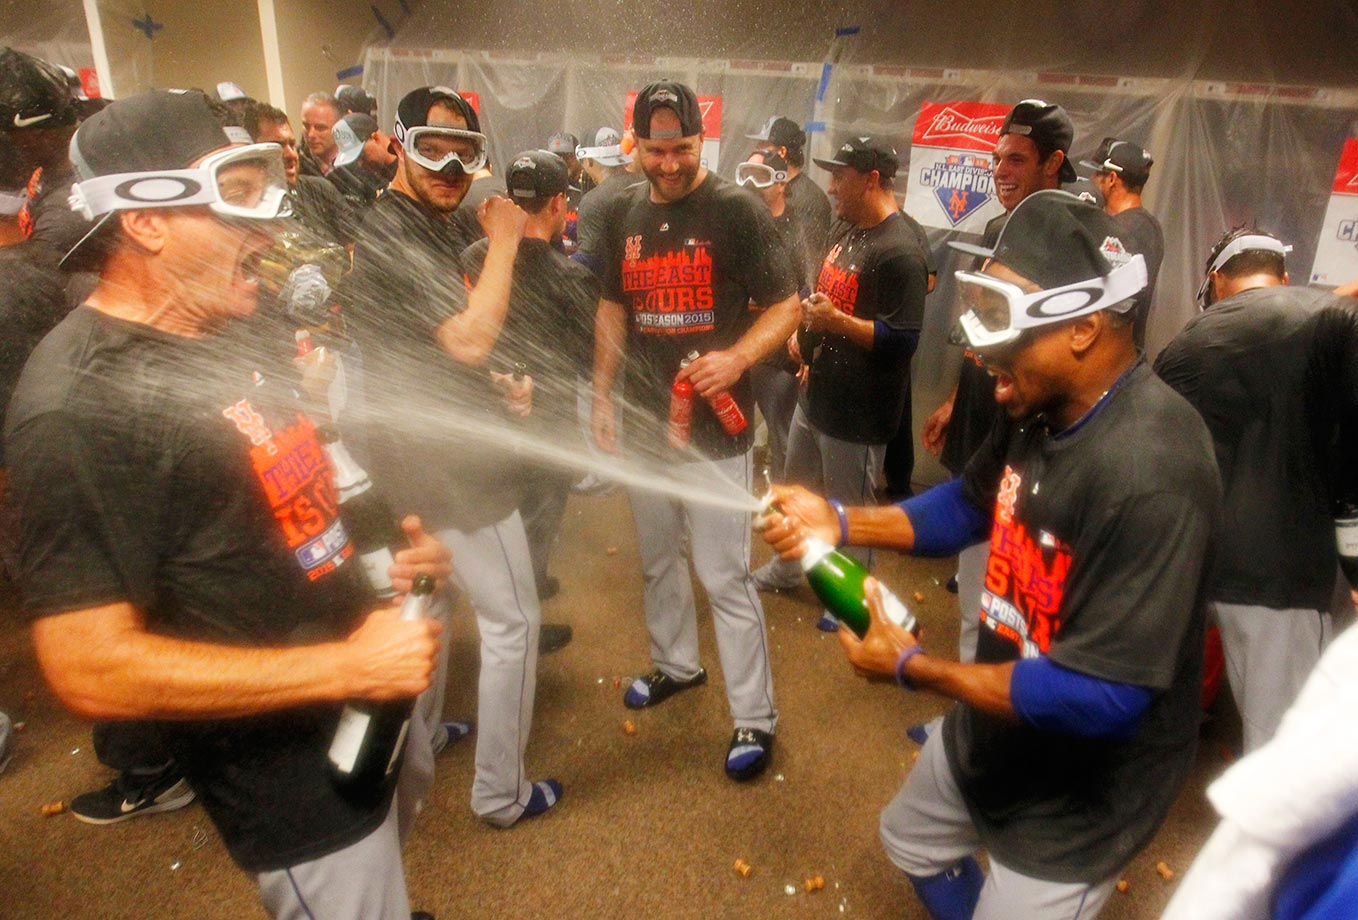 Curtis Granderson of the New York Mets sprays champagne on Bob Geren as they celebrate clinching the National League East.